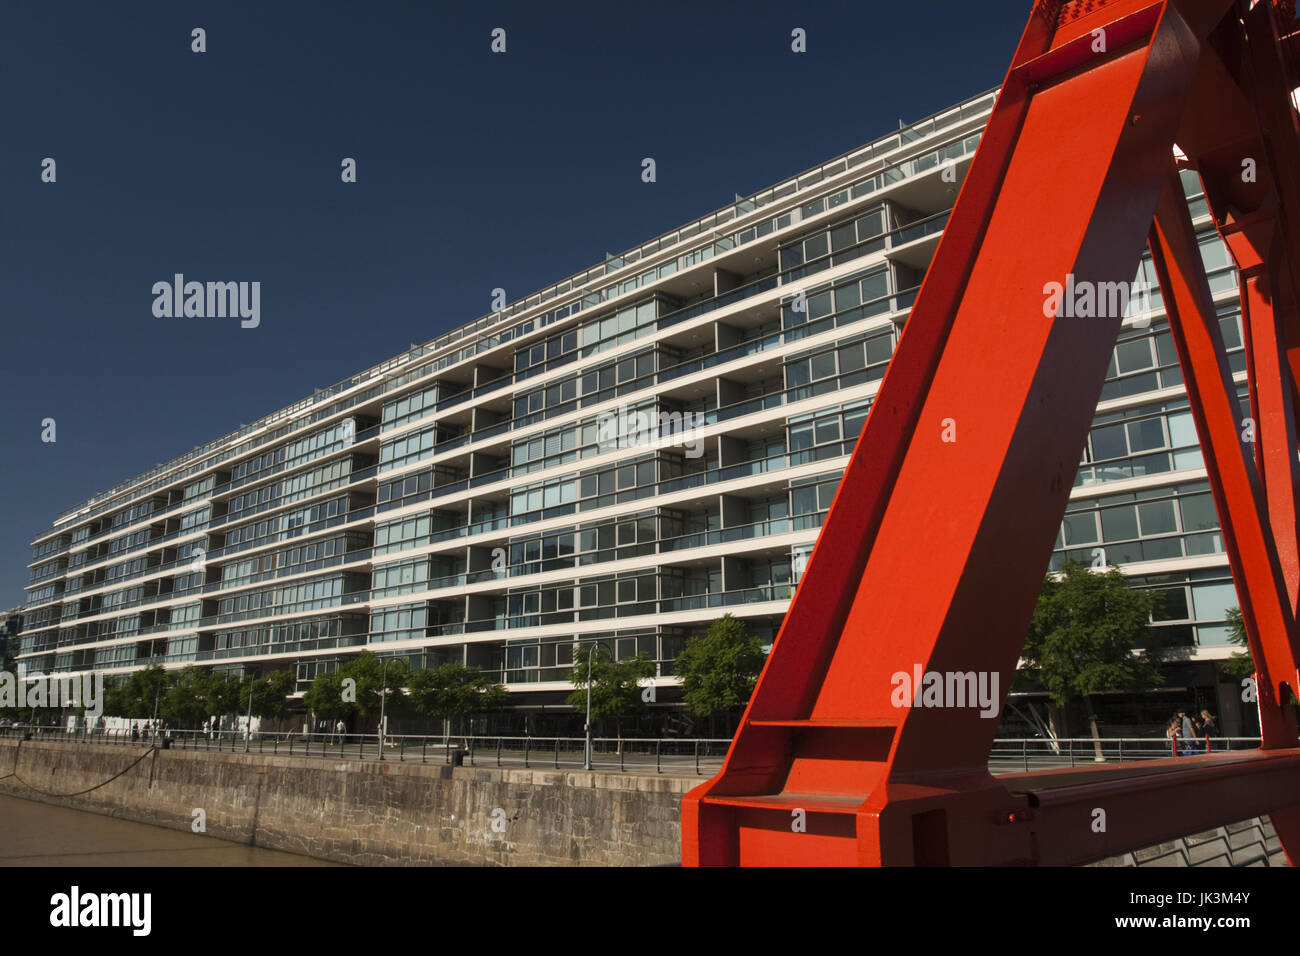 Argentina, Buenos Aires, Puerto Madero, new portside buildings - Stock Image